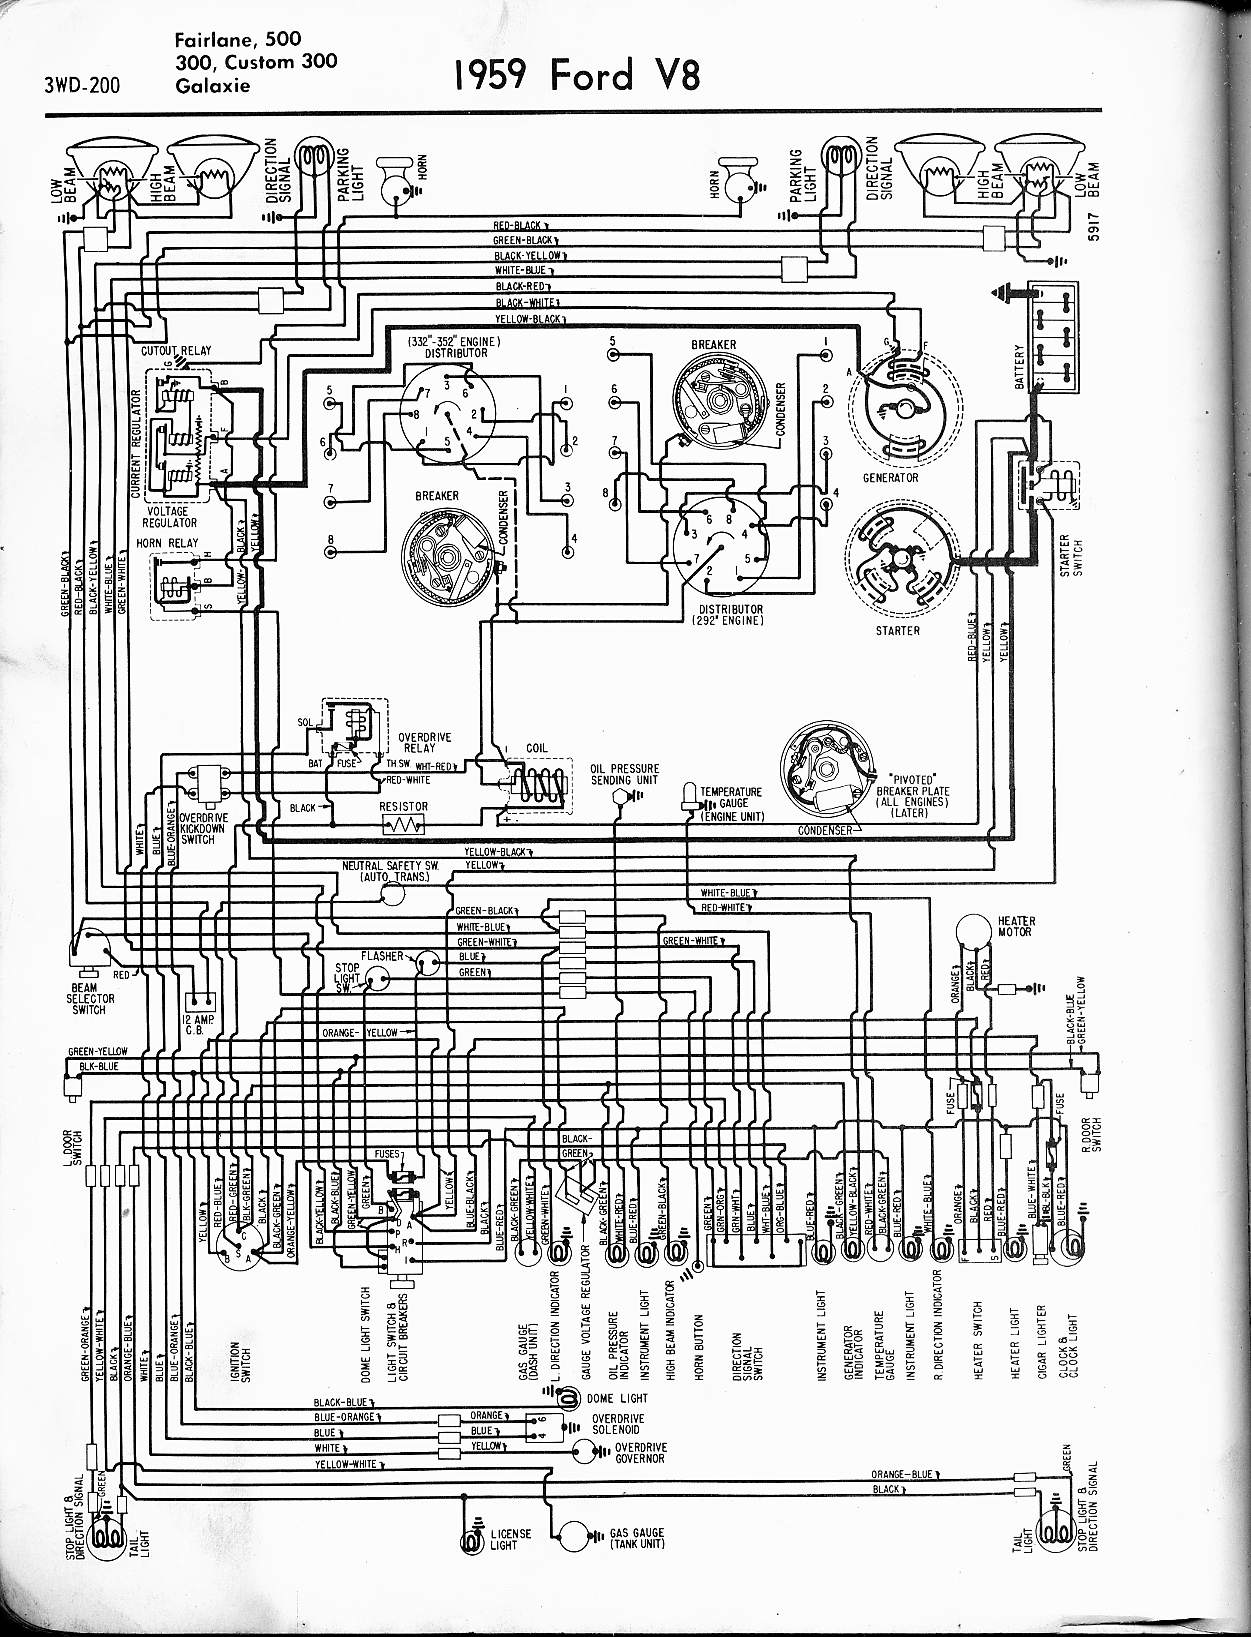 1960 Ford F100 Wiring Diagram Simple For Chevy Truck 57 65 Diagrams 1962 Nova